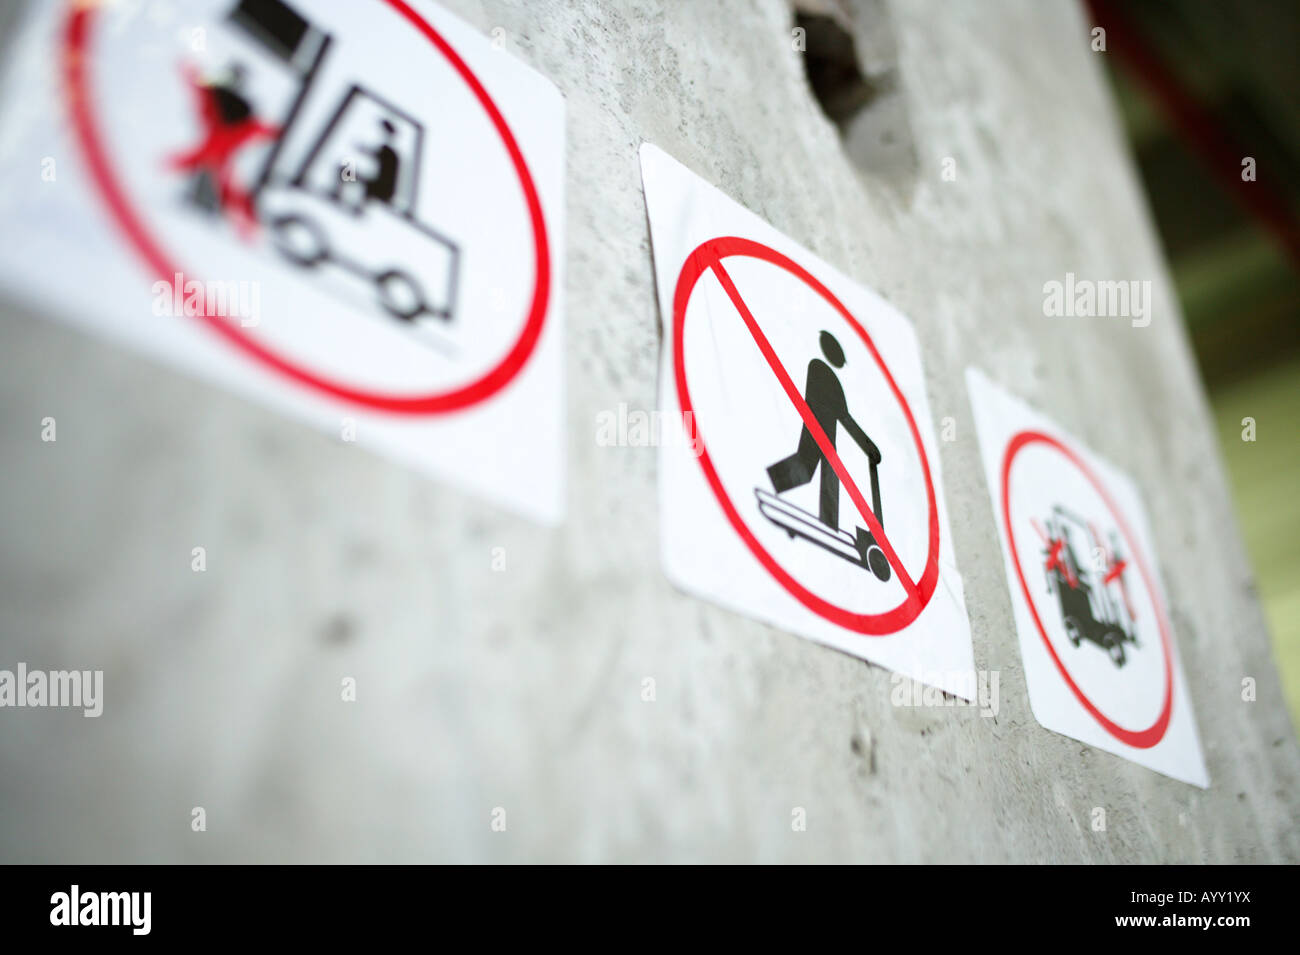 Prohibition signs on a concrete wall - Stock Image